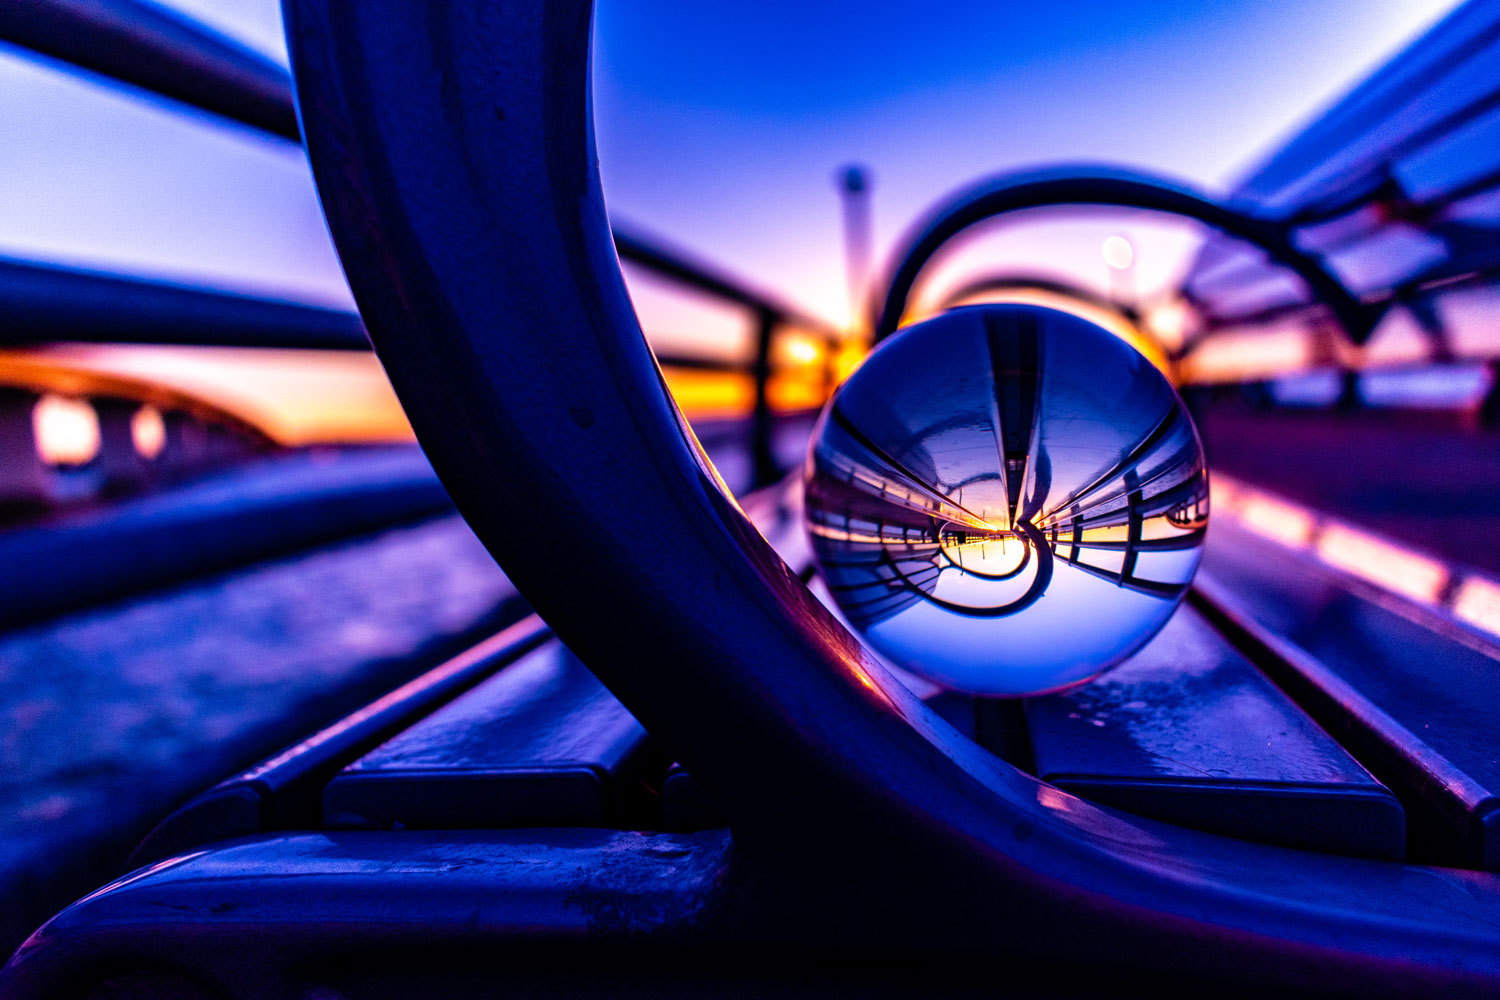 Glass-Ball-Bench-Reflection-Purple-Sunset.jpg